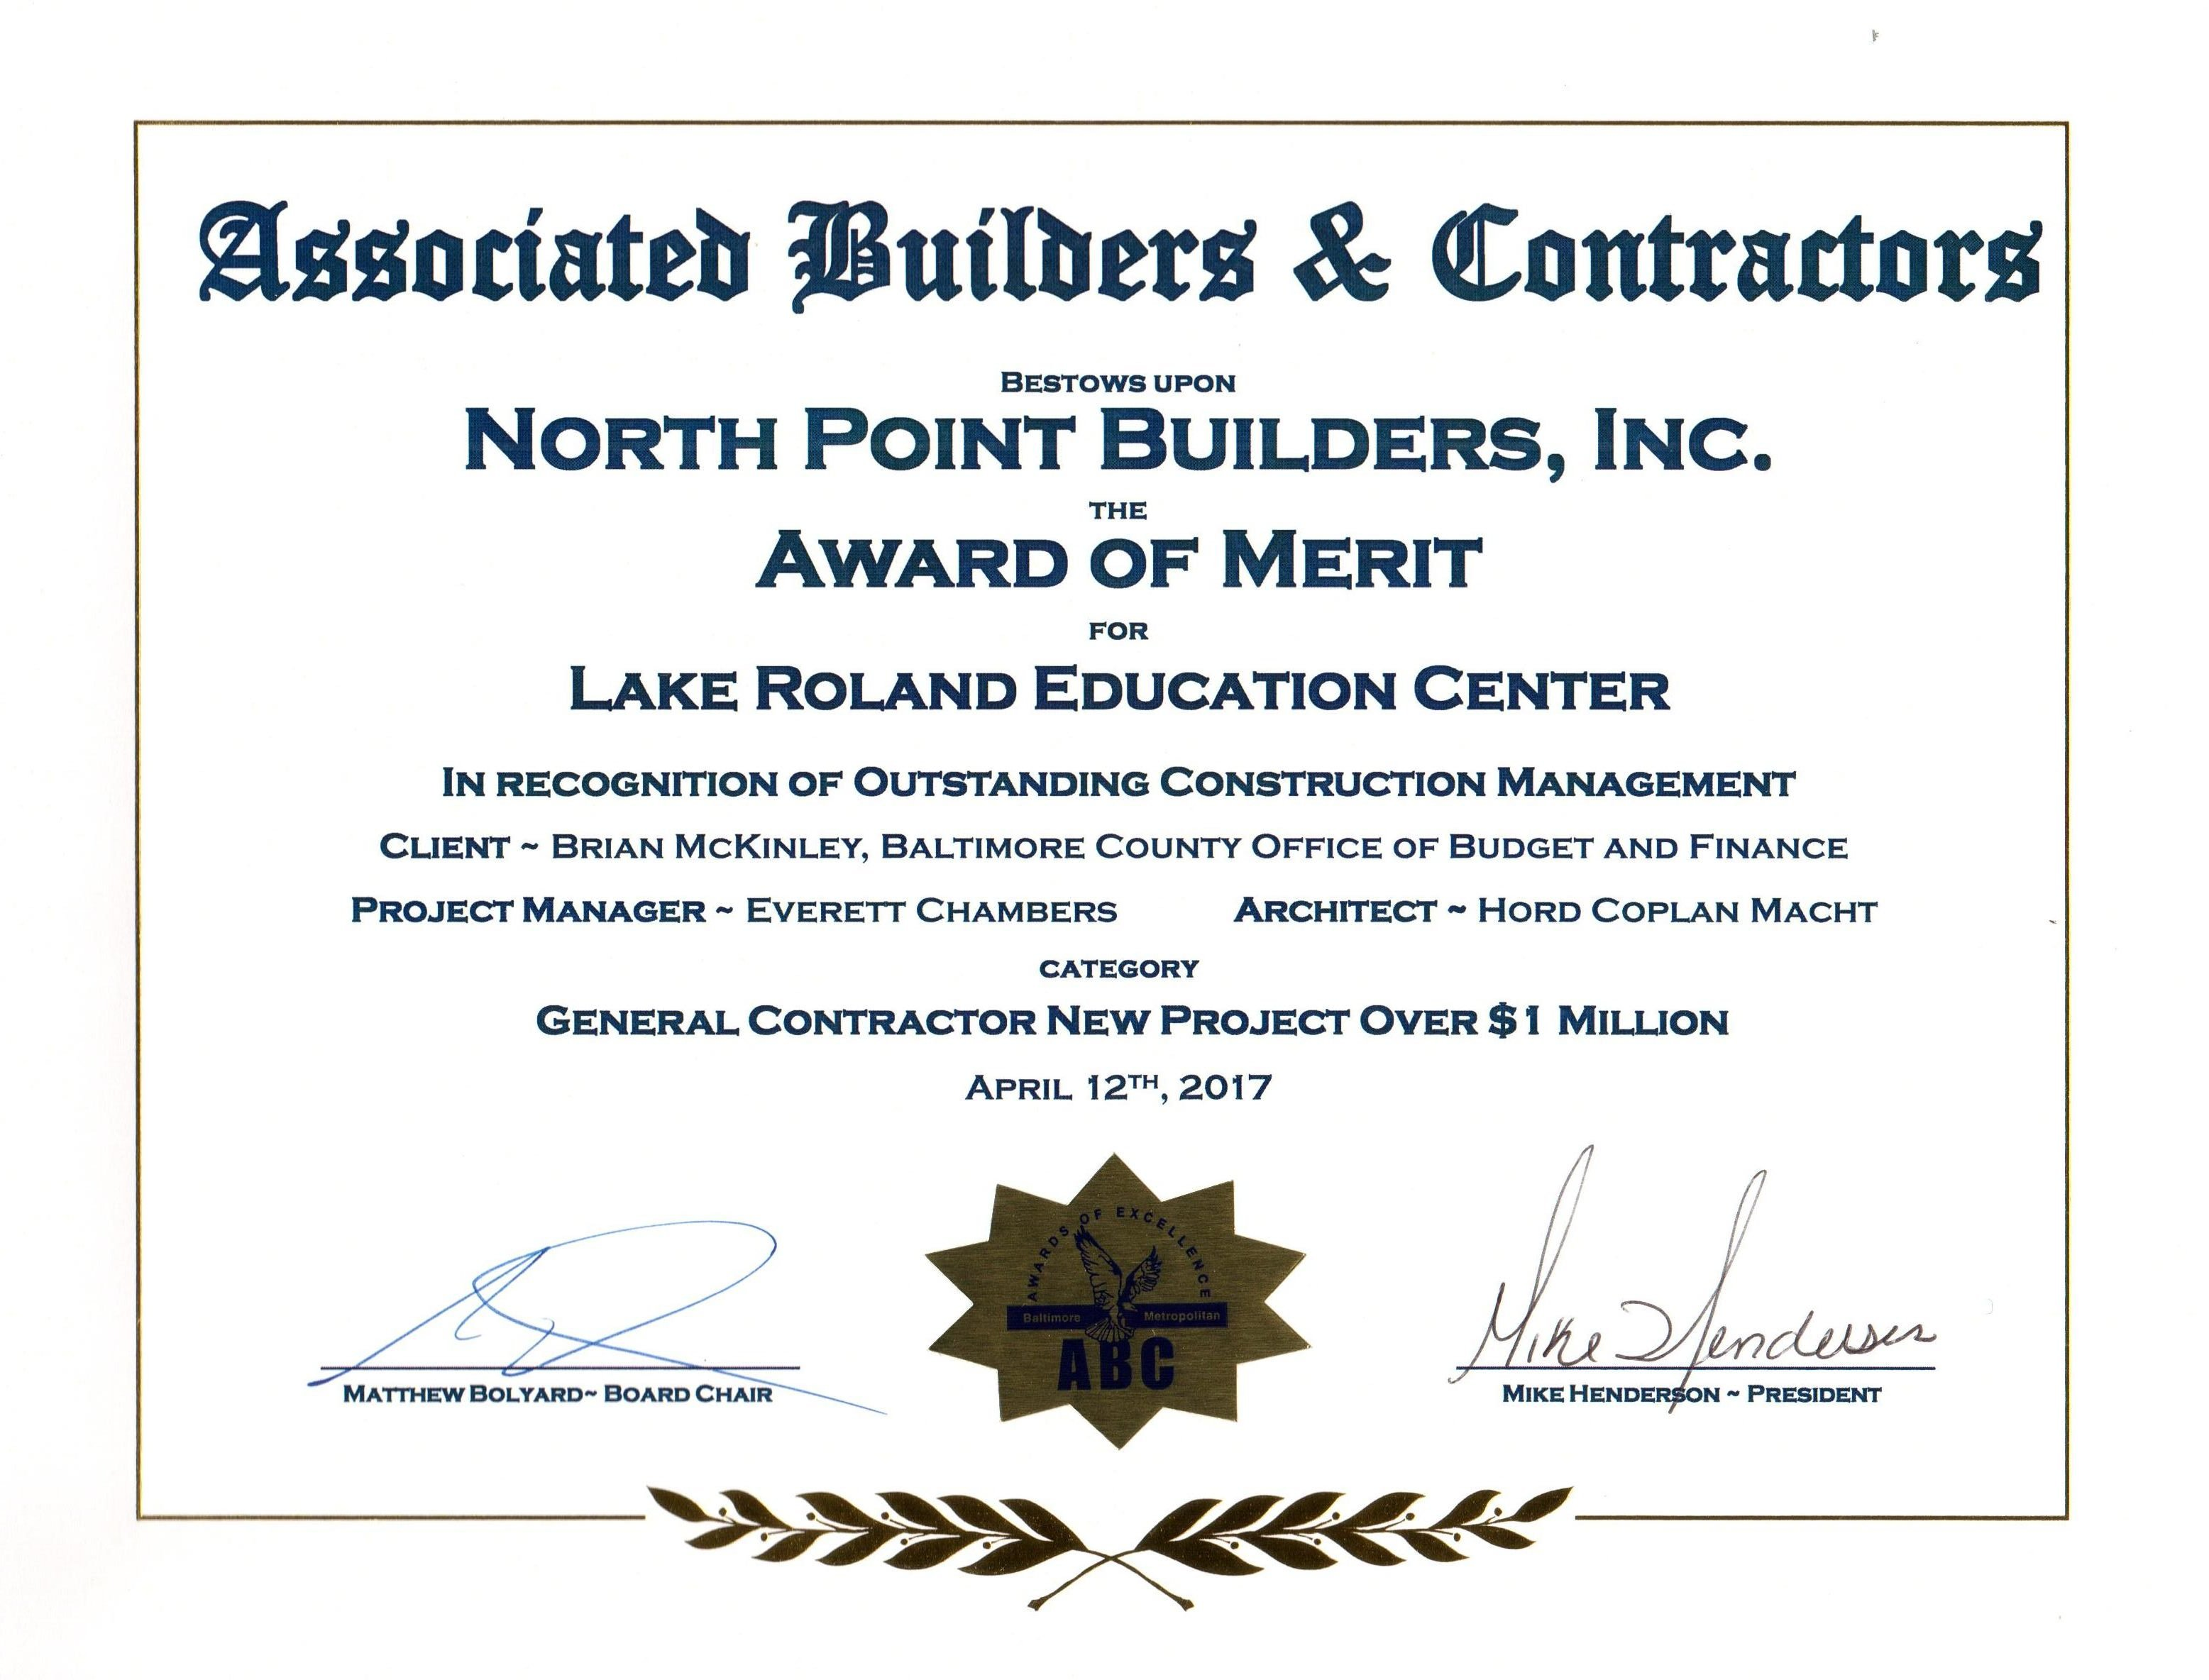 The Nature Center won the prestigious Associated Builders & Contractors Award of Merit